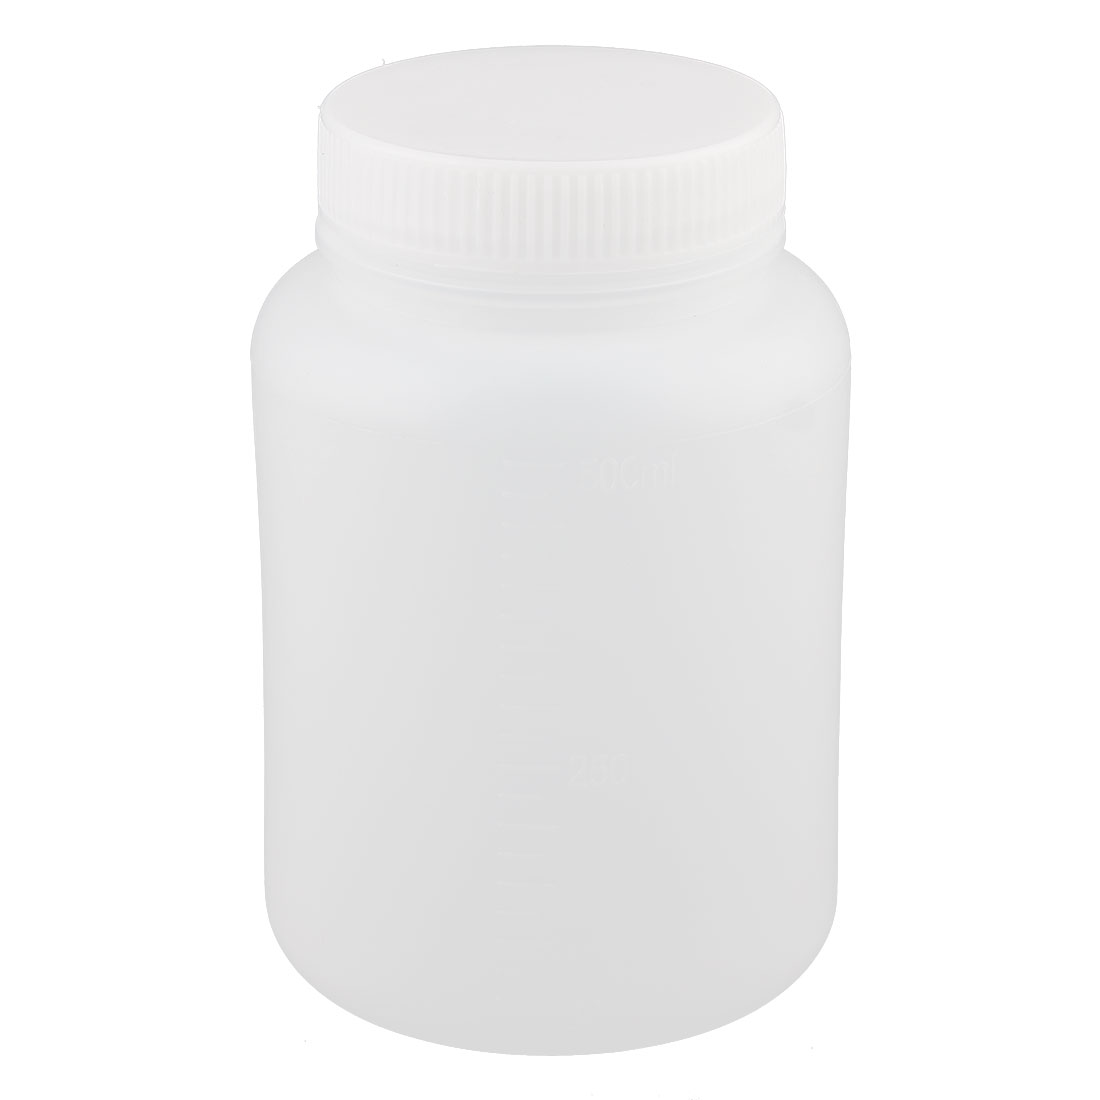 Lab 55mm Dia Plastic Widemouth Double Cap Chemical Storage Case Bottle White 500ml